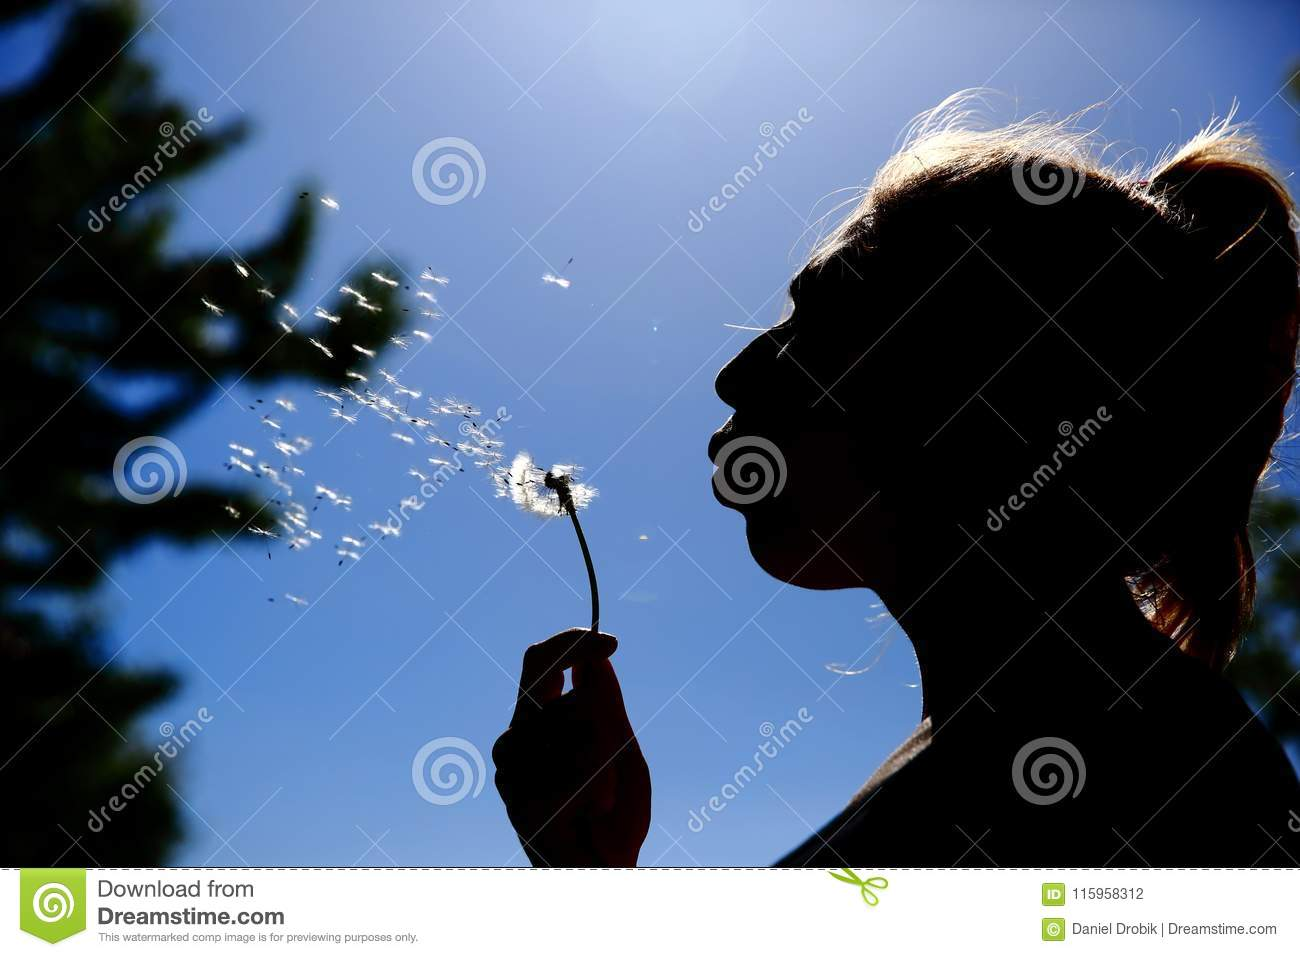 The teenager gently blows and spreads the dandelion seeds against the blue sky.